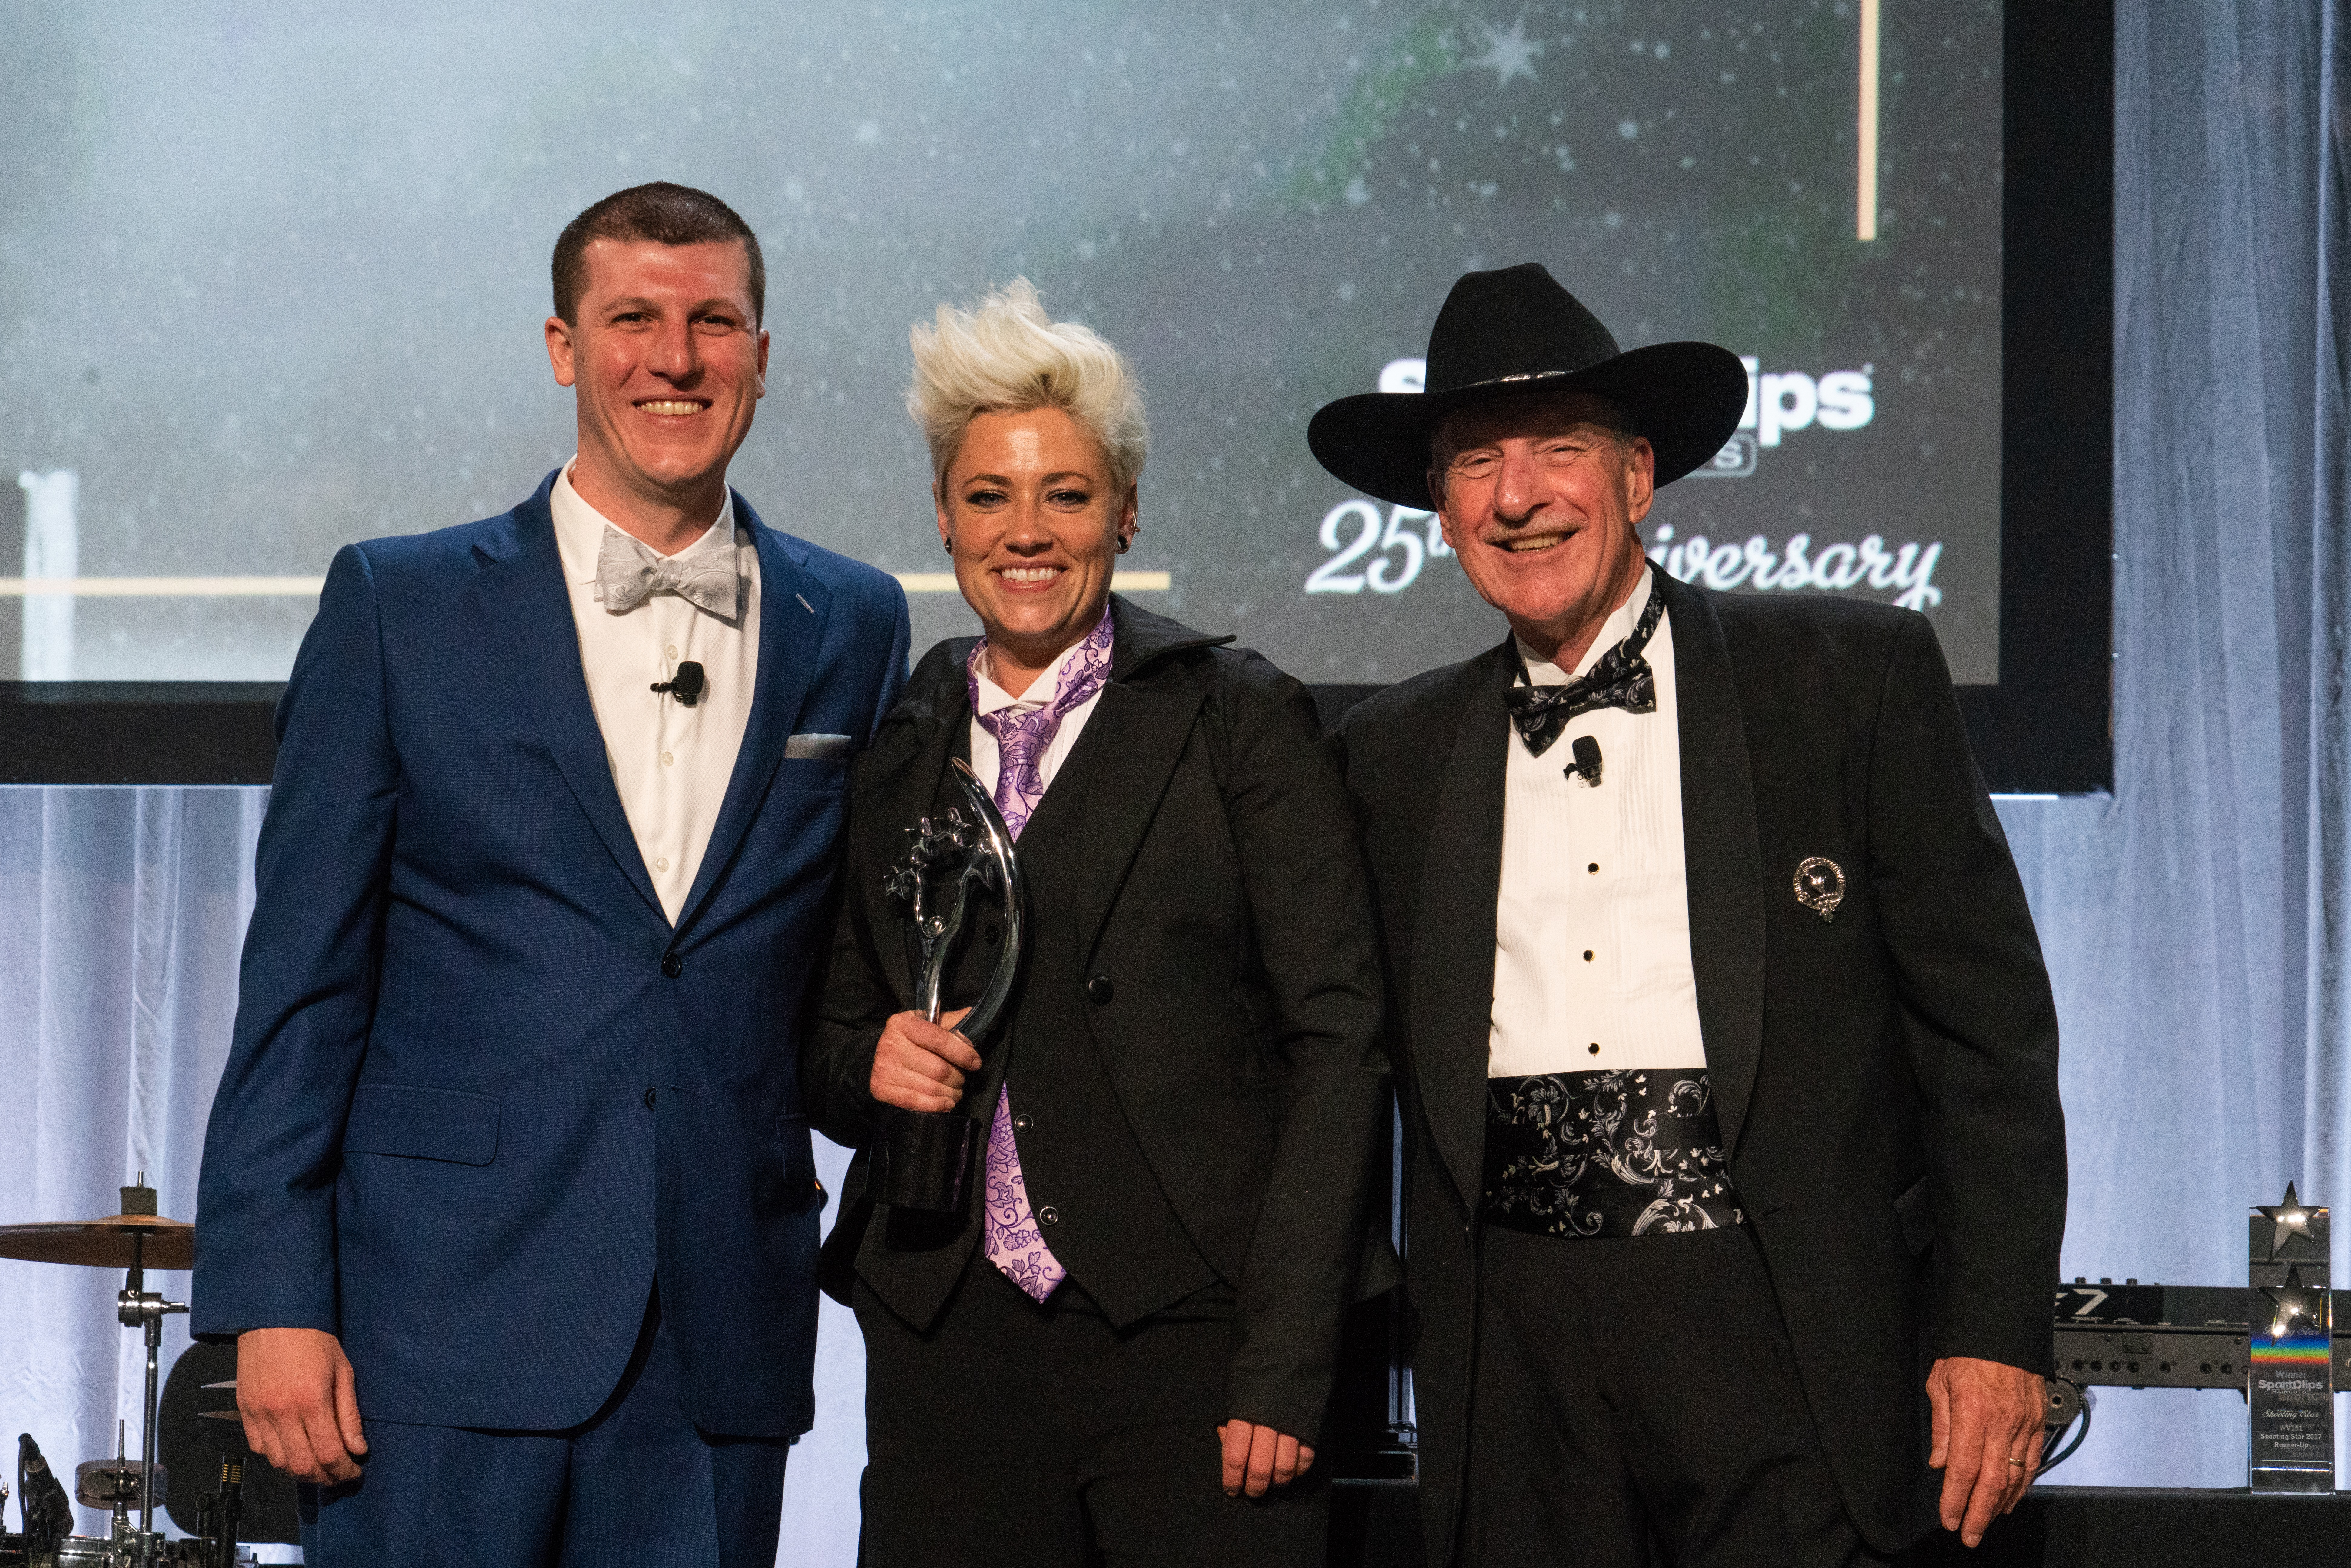 New President Named, 25th Anniversary Celebrated, atSport Clips Haircuts National Huddle,